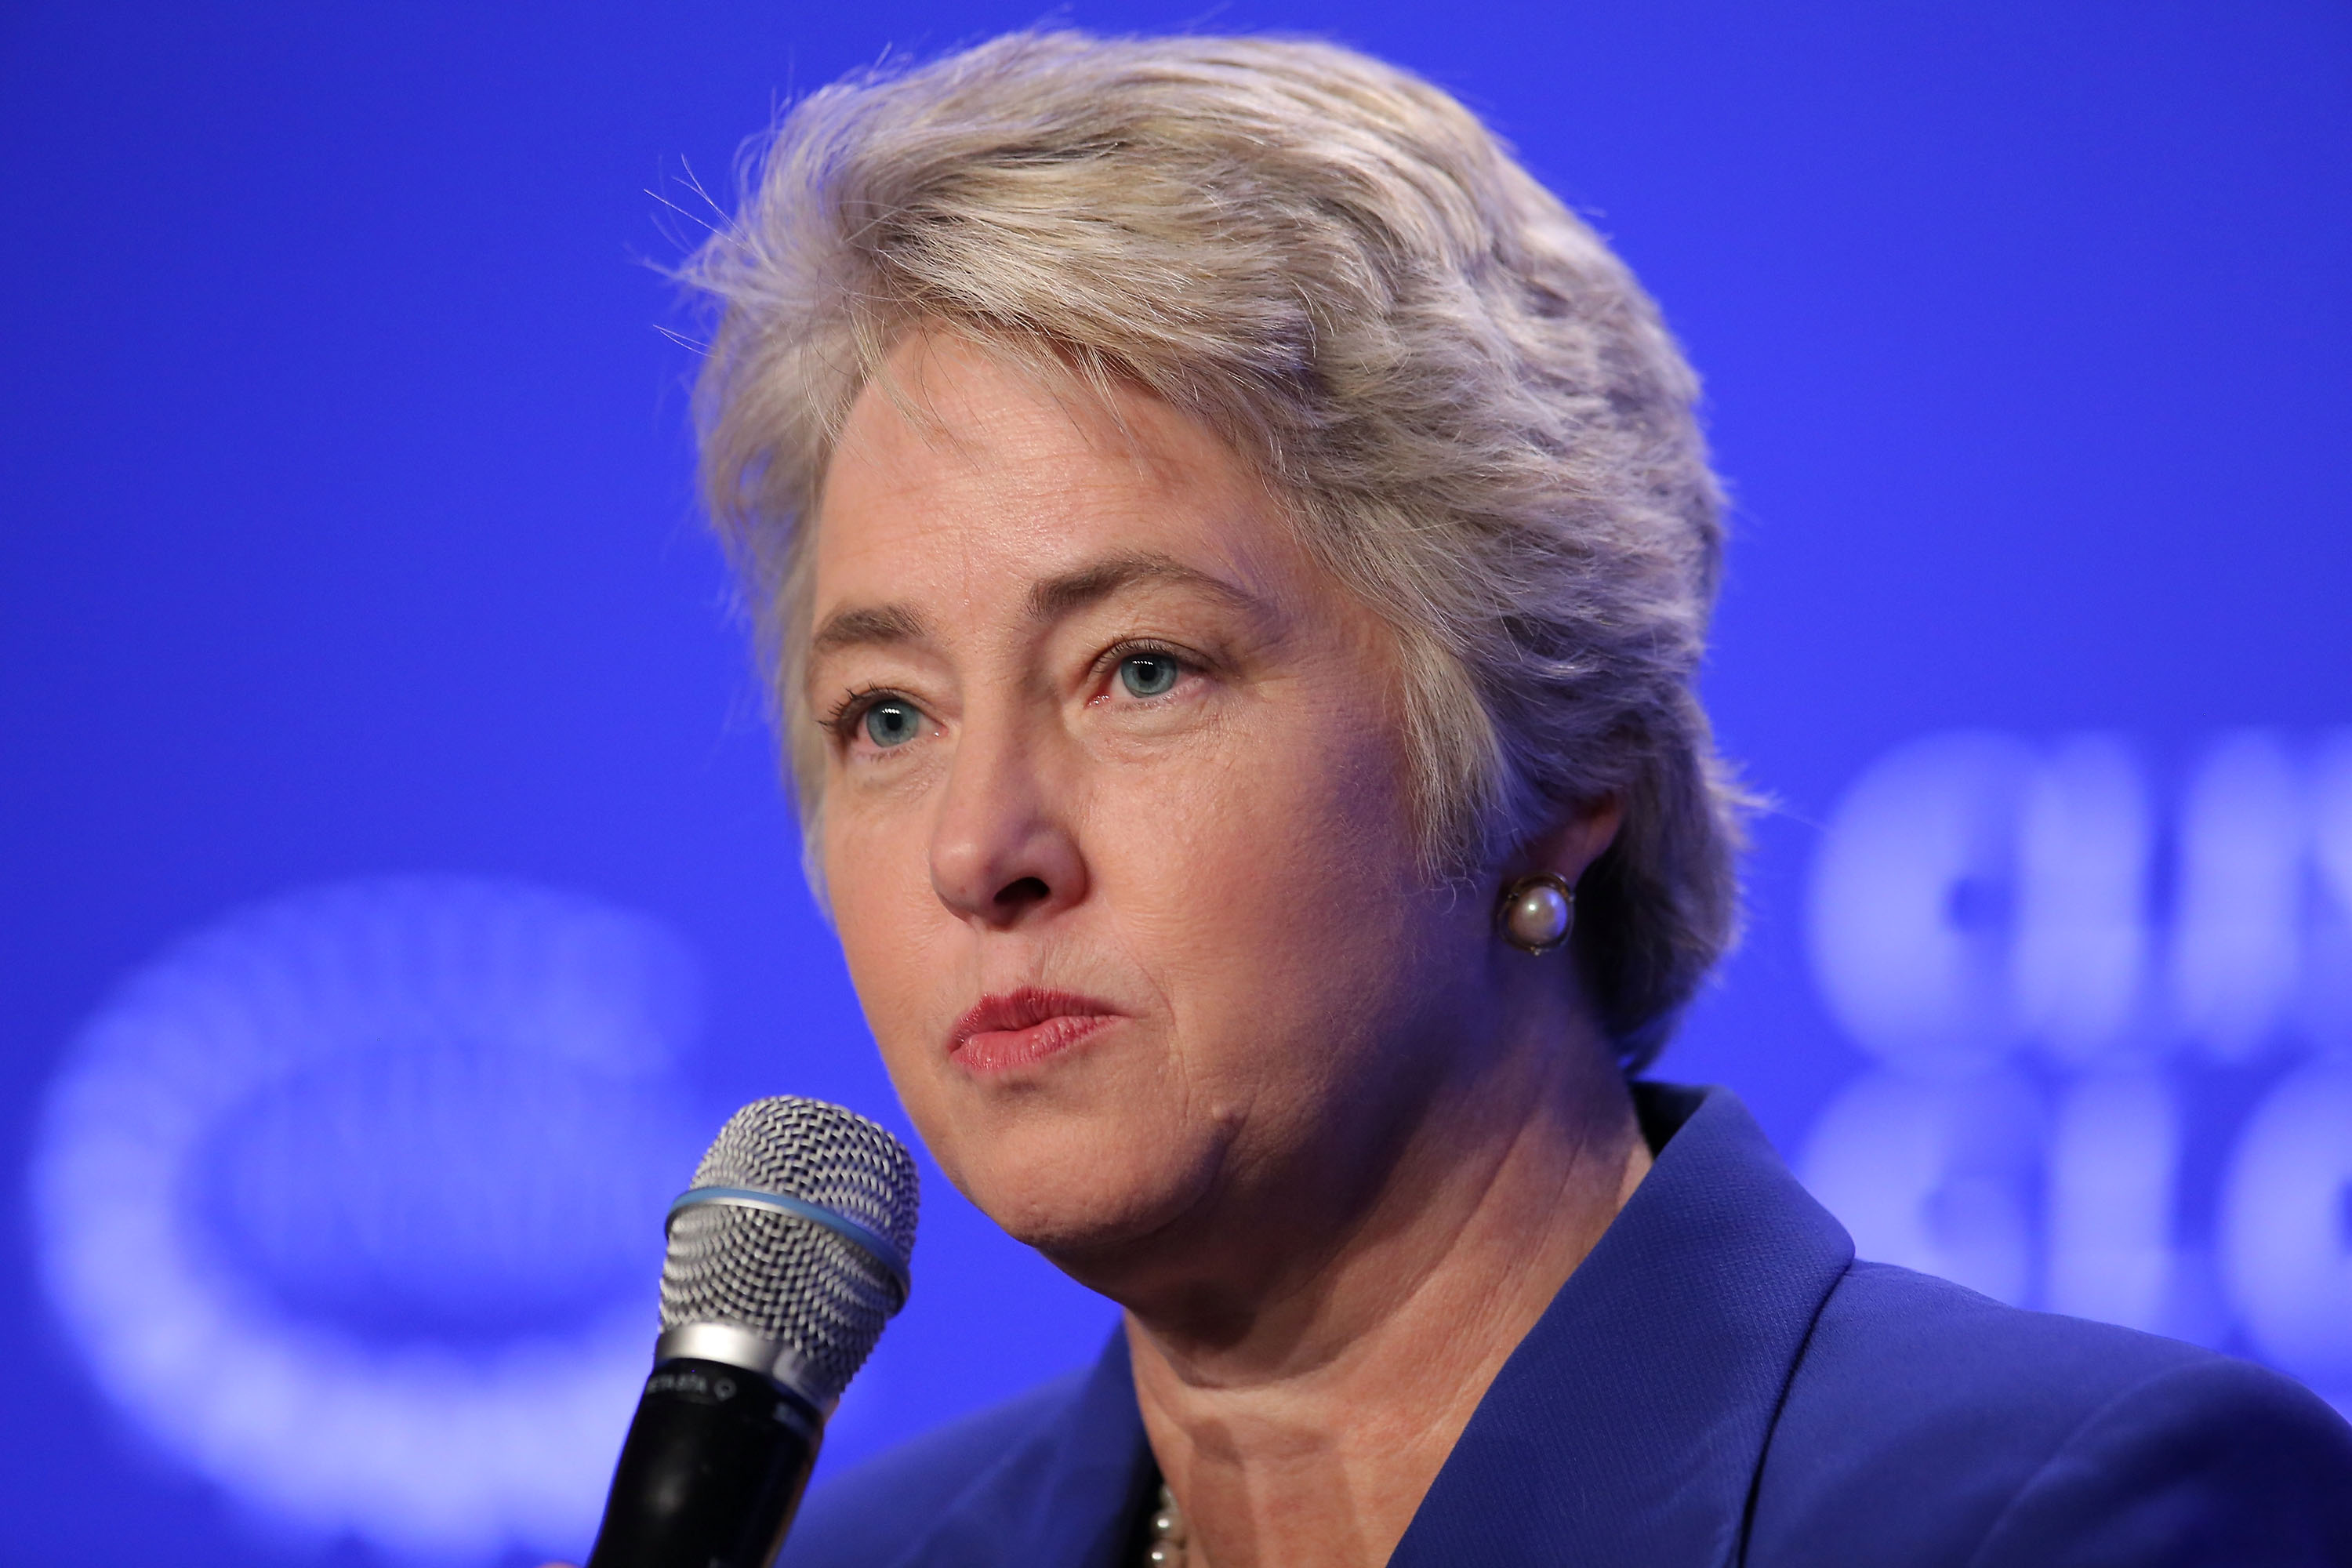 Houston Mayor Annise Parker lost a big fight with the conservatives, when voters rejected an anti-discrimination law. (Photo by Jemal Countess/Getty Images)